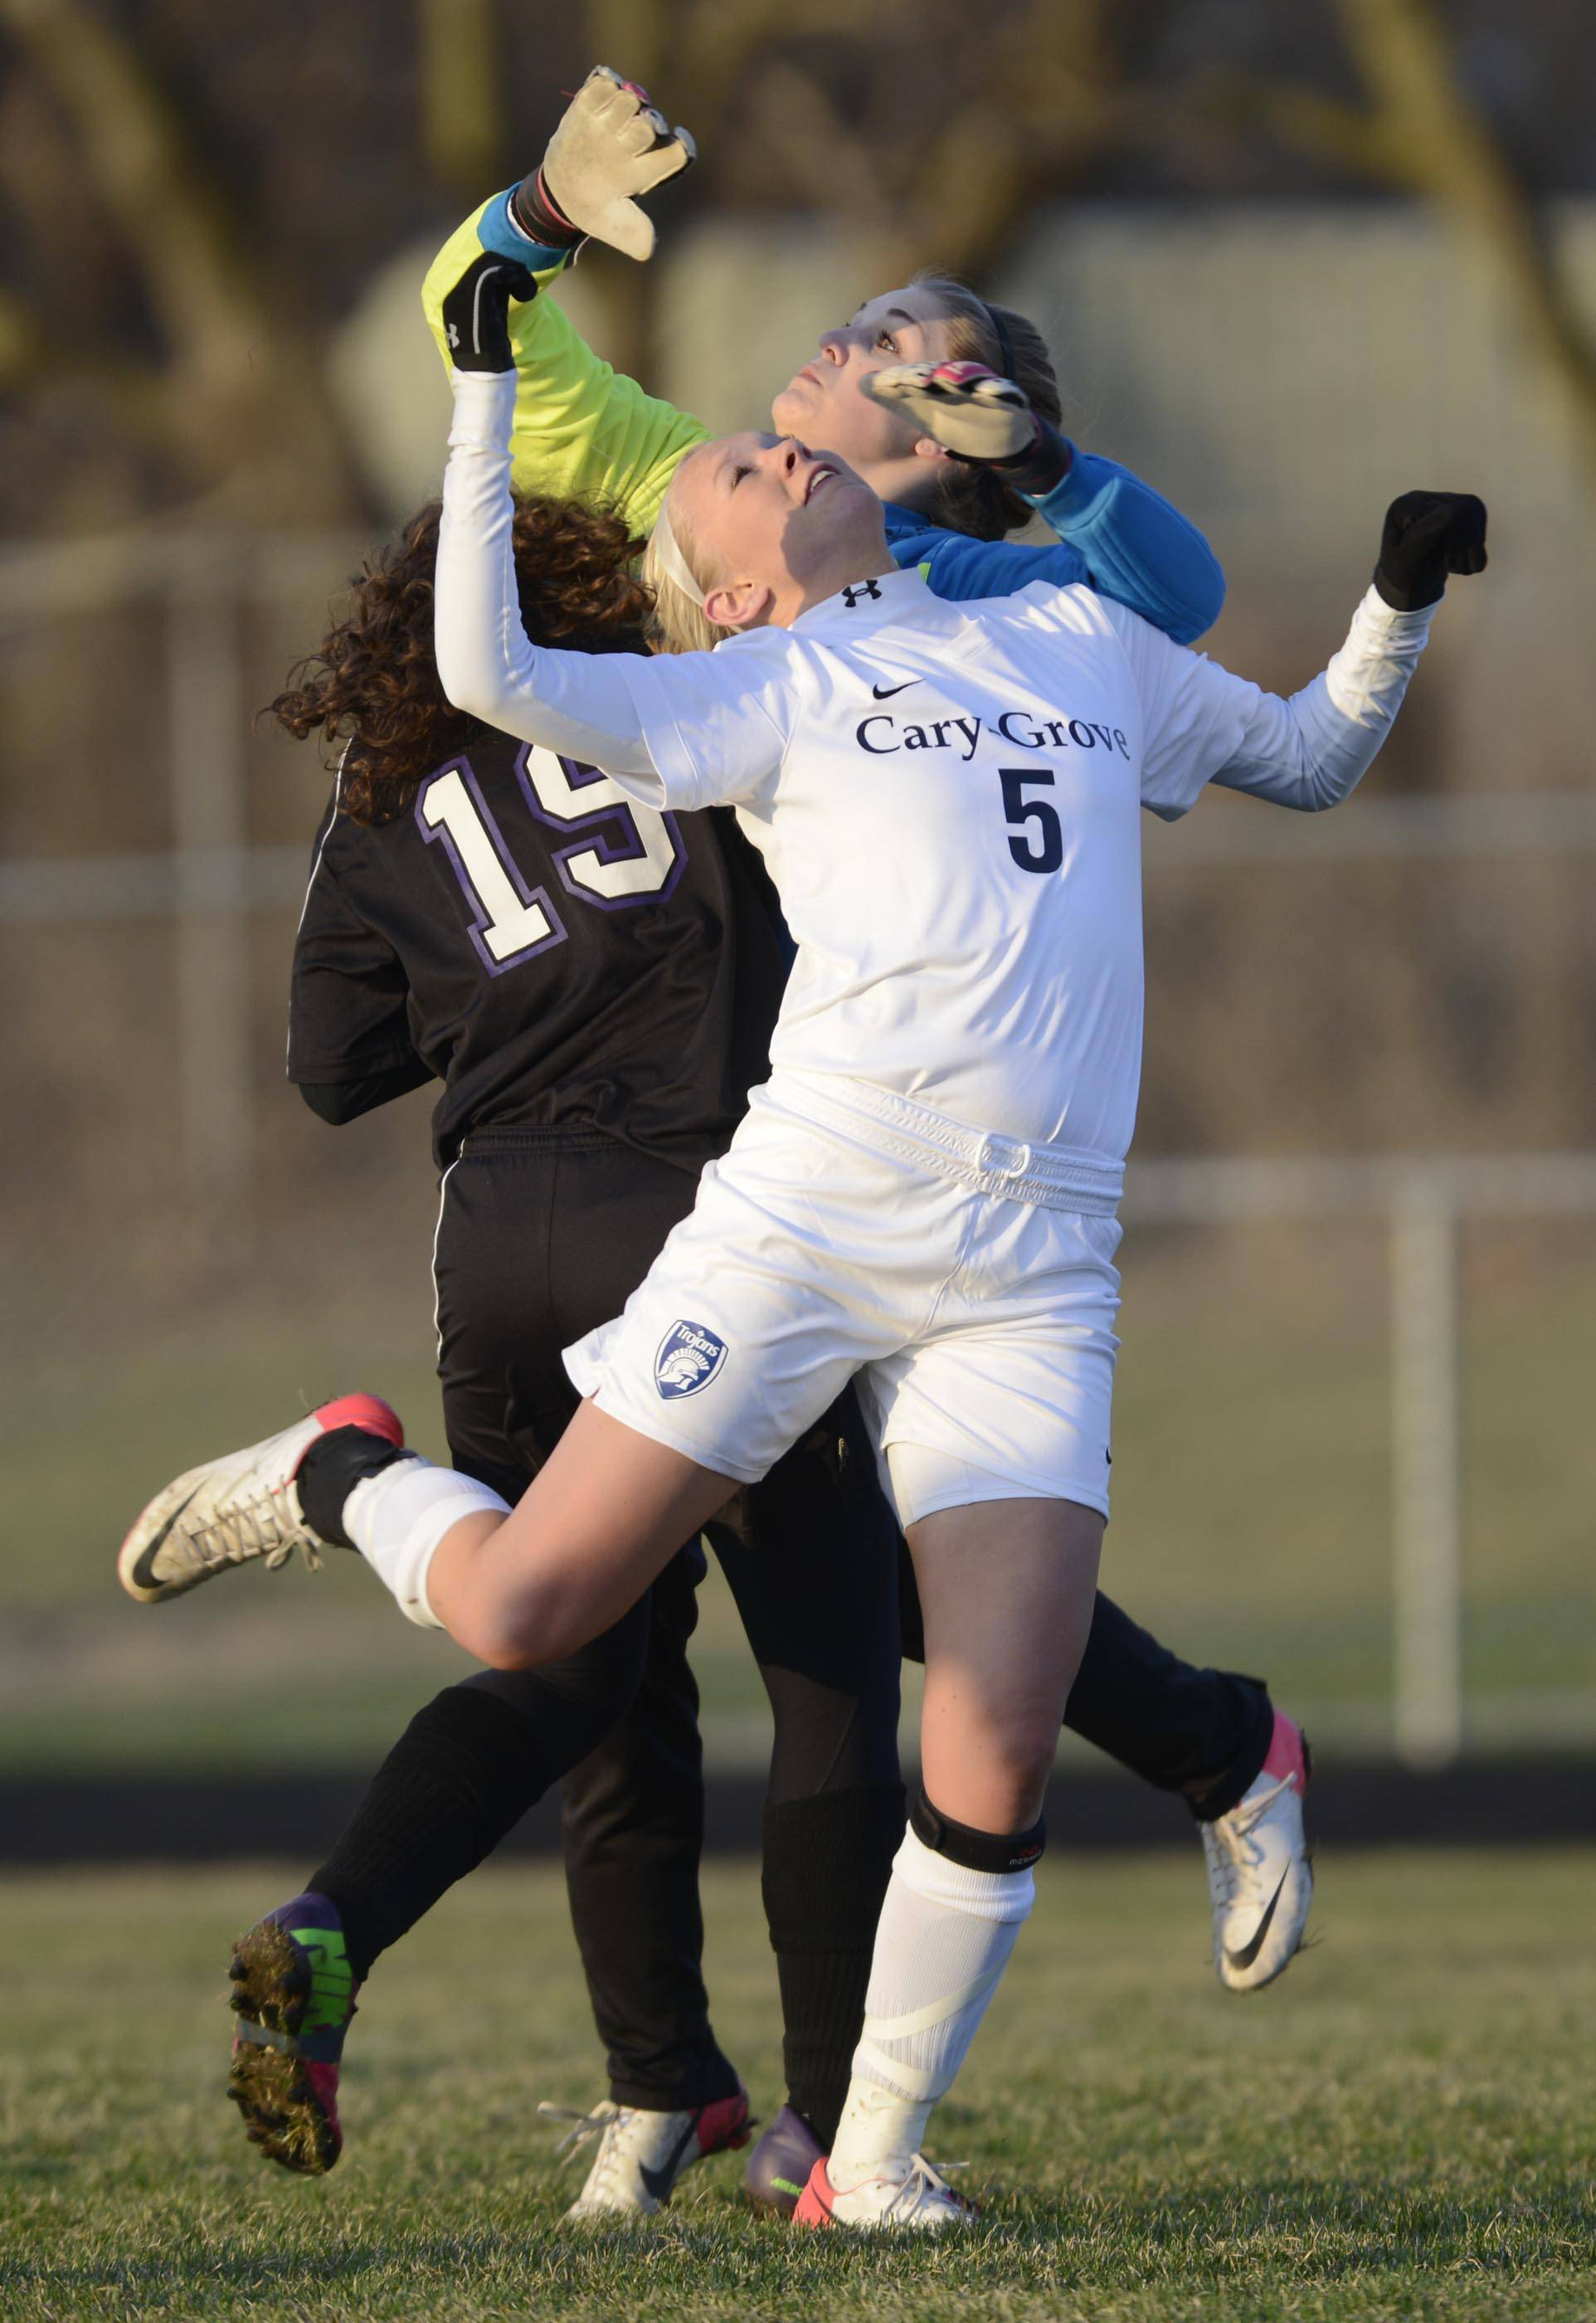 Cary-Grove's Carli Petersen collides with Hampshire goalkeeper Catherine Kochanski Tuesday in Cary. Petersen had two goals in the first half.